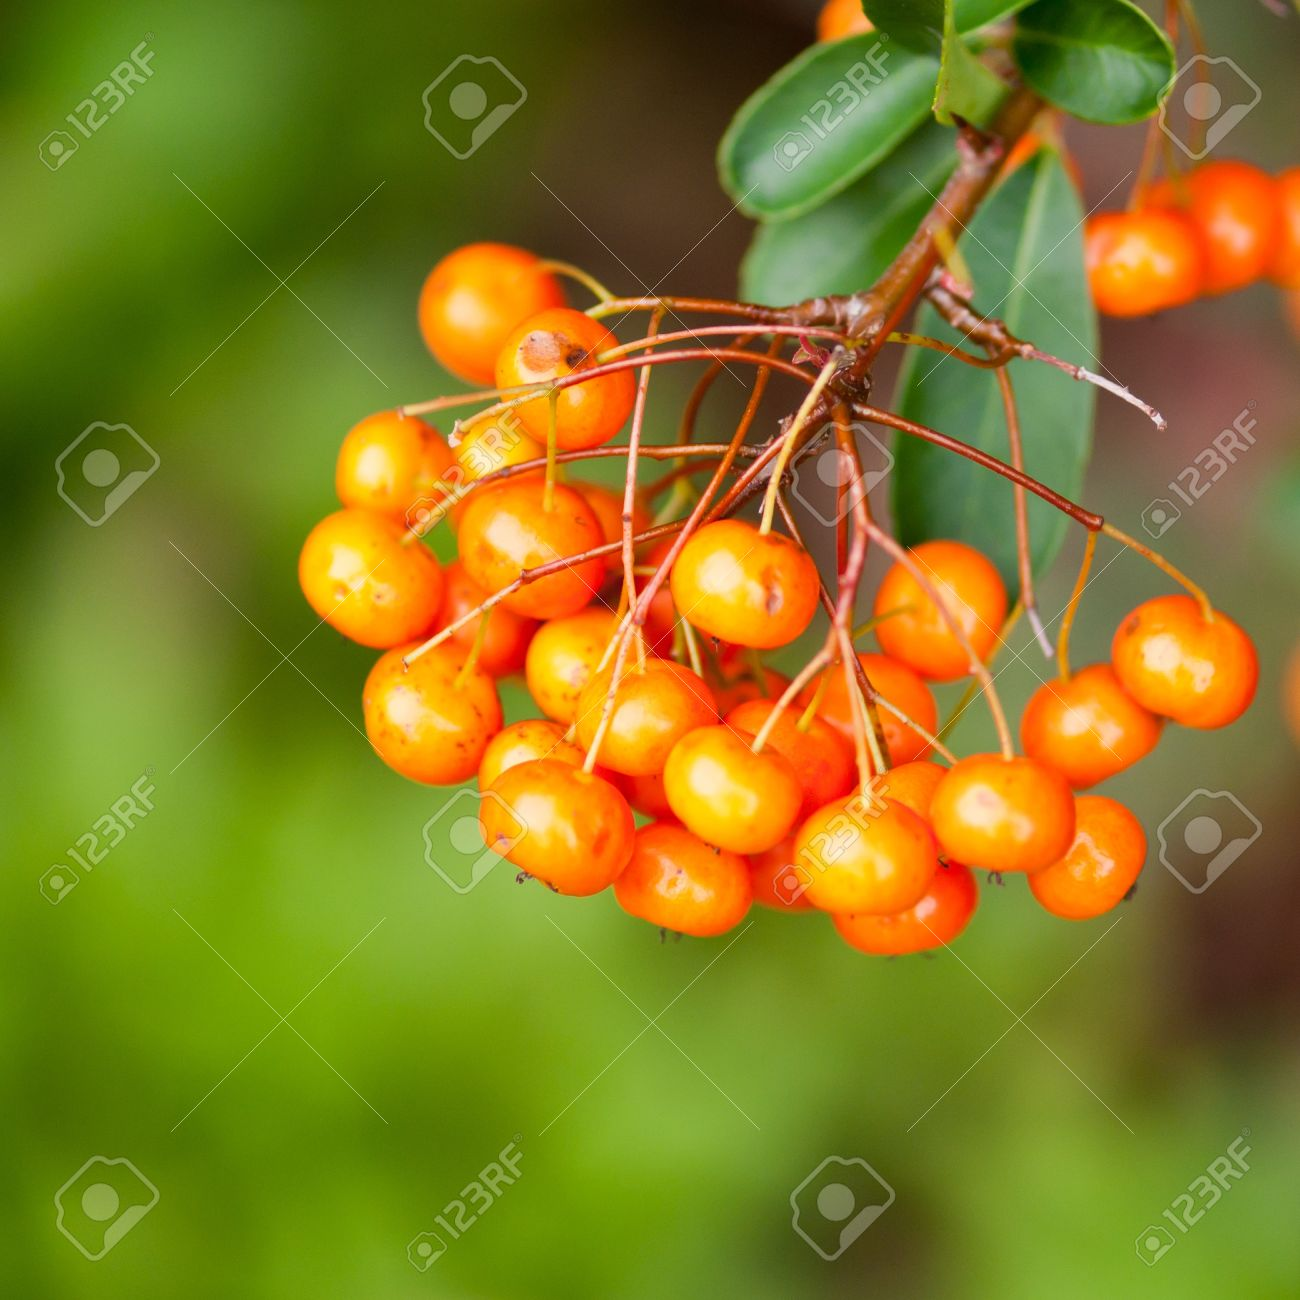 The Orange Berries Of A Pyracantha Bush Stock Photo Picture And